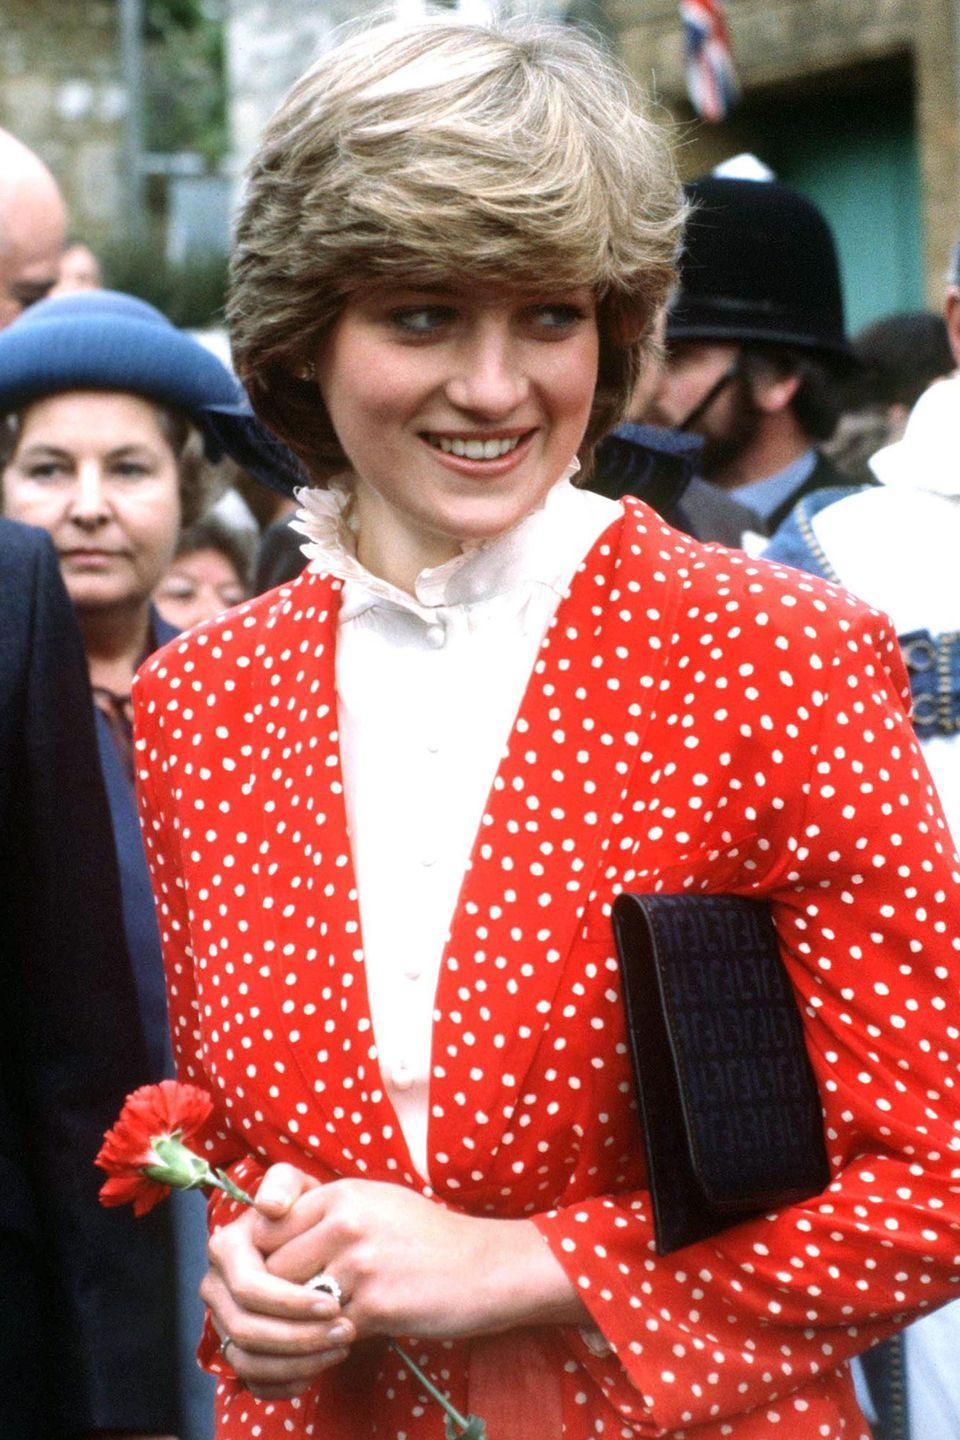 <p>Crowds gathered to catch a glimpse of the future princess during a visit to Tetbury on May 22, 1981. </p>